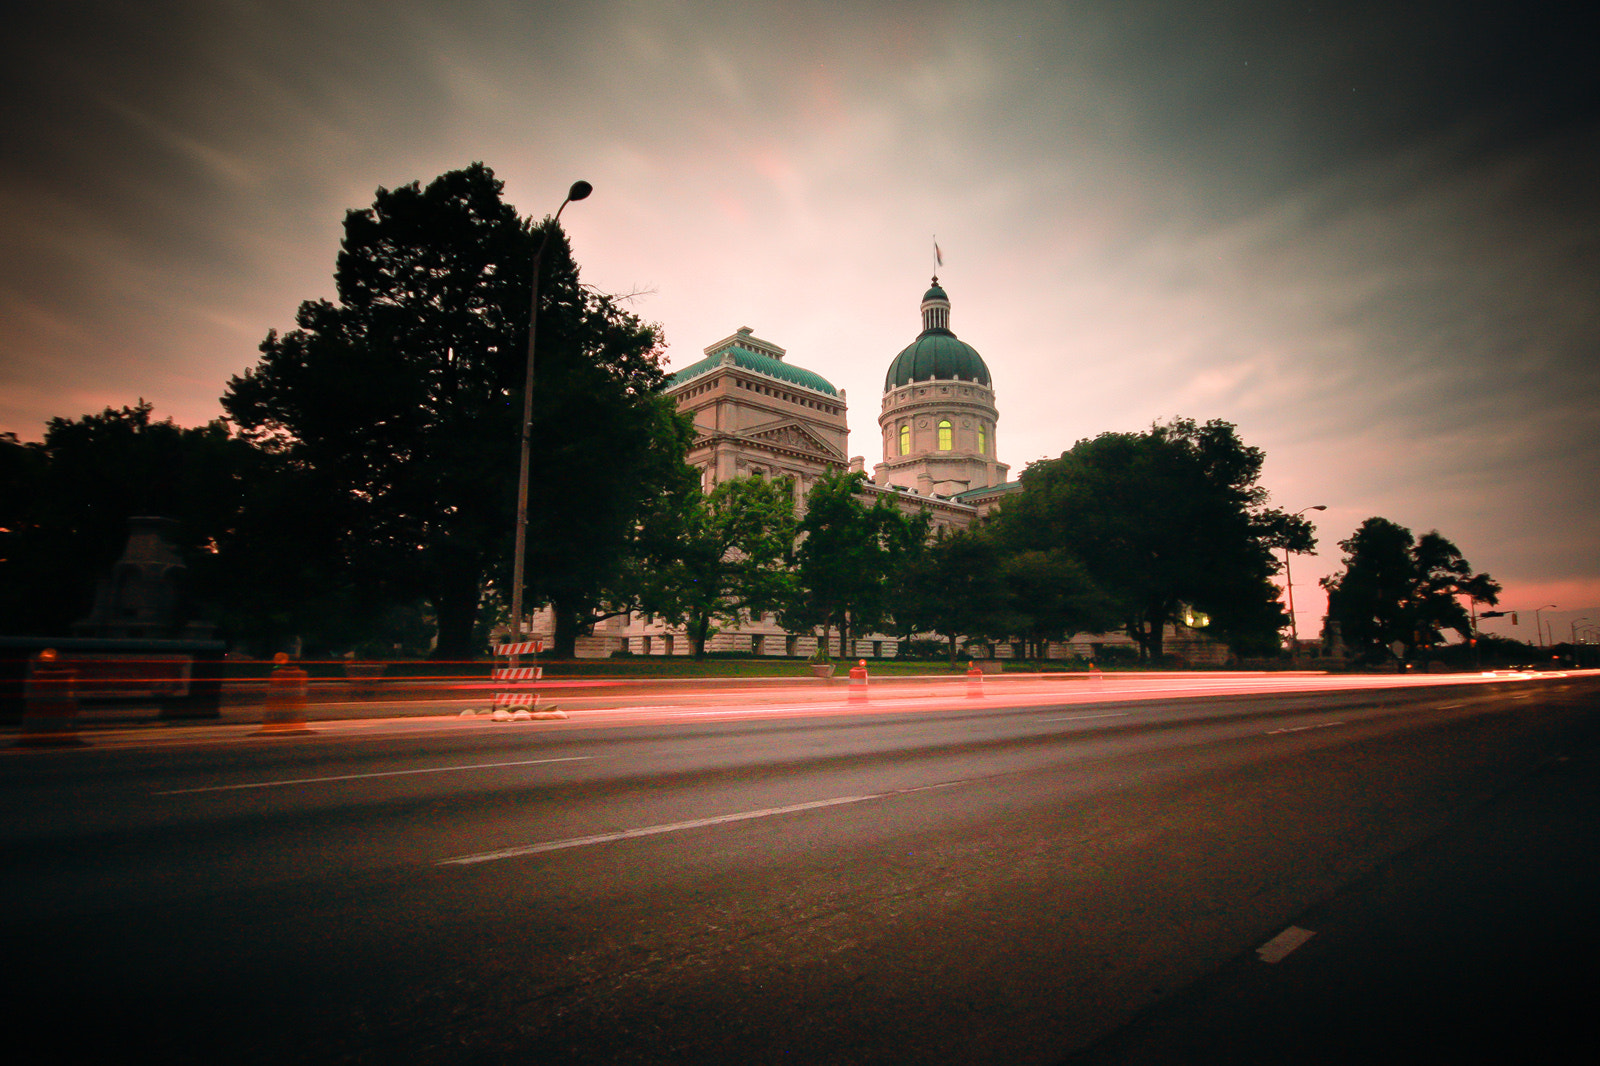 Photograph statehouse by Rami Khan on 500px